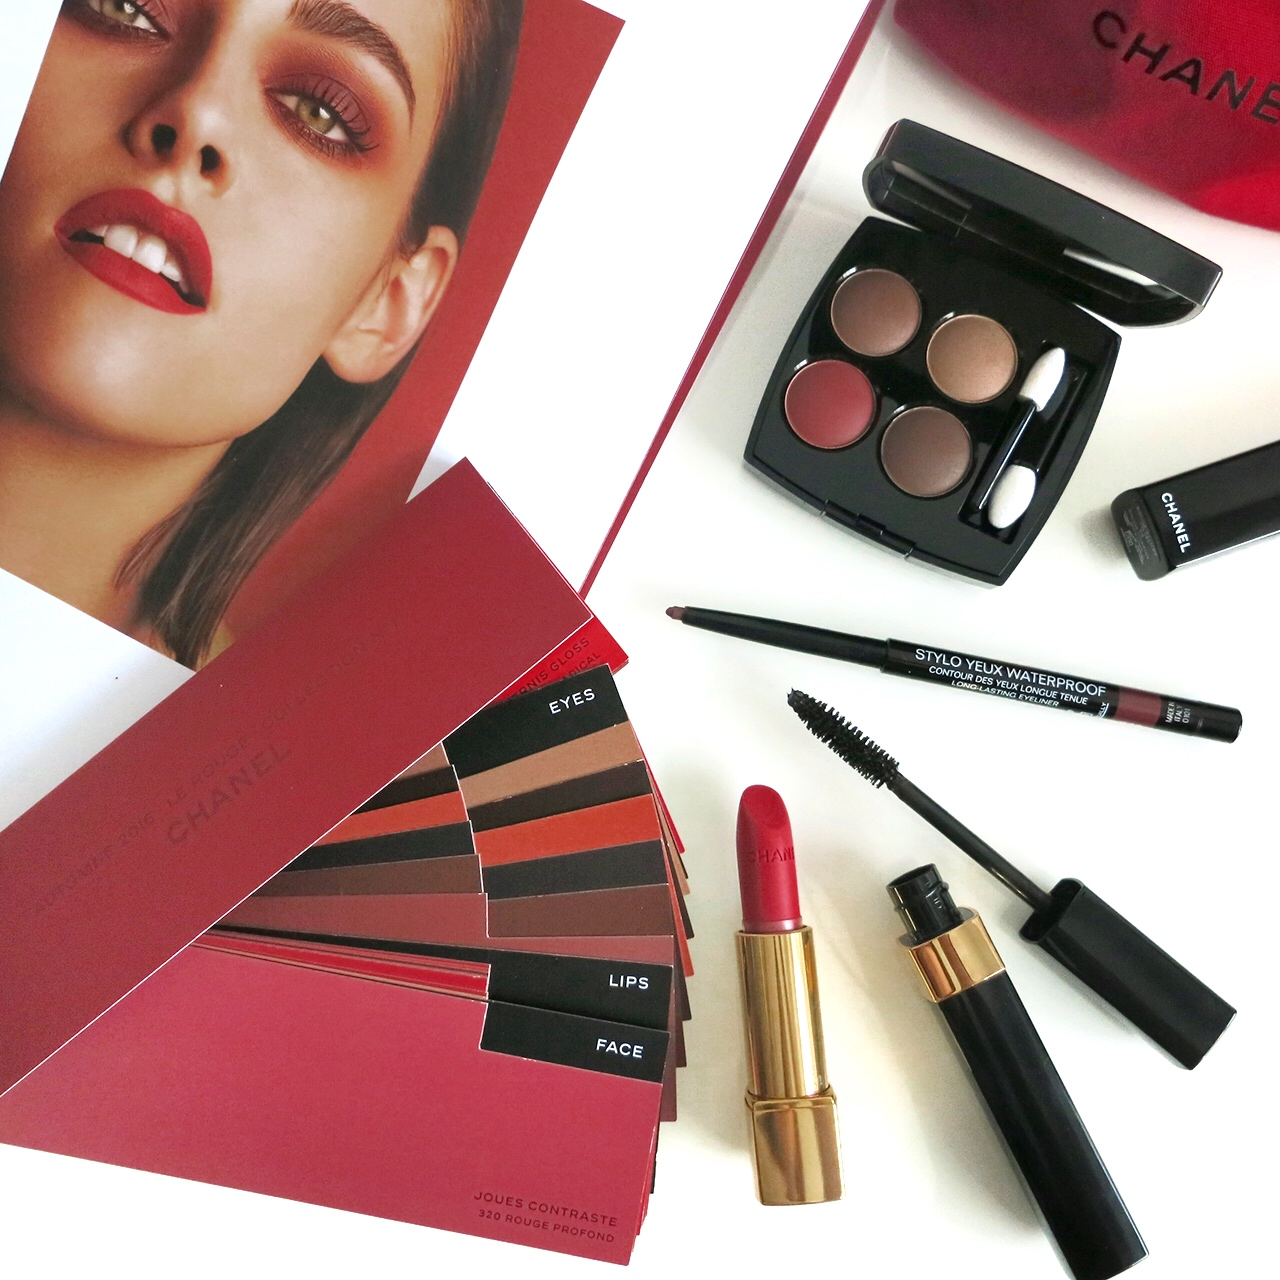 Chanel Les 4 Ombres Candour et Experience, Stylo Yeux Waterproof Eros, Dimensions de Chanel Subversif for Fall 2016